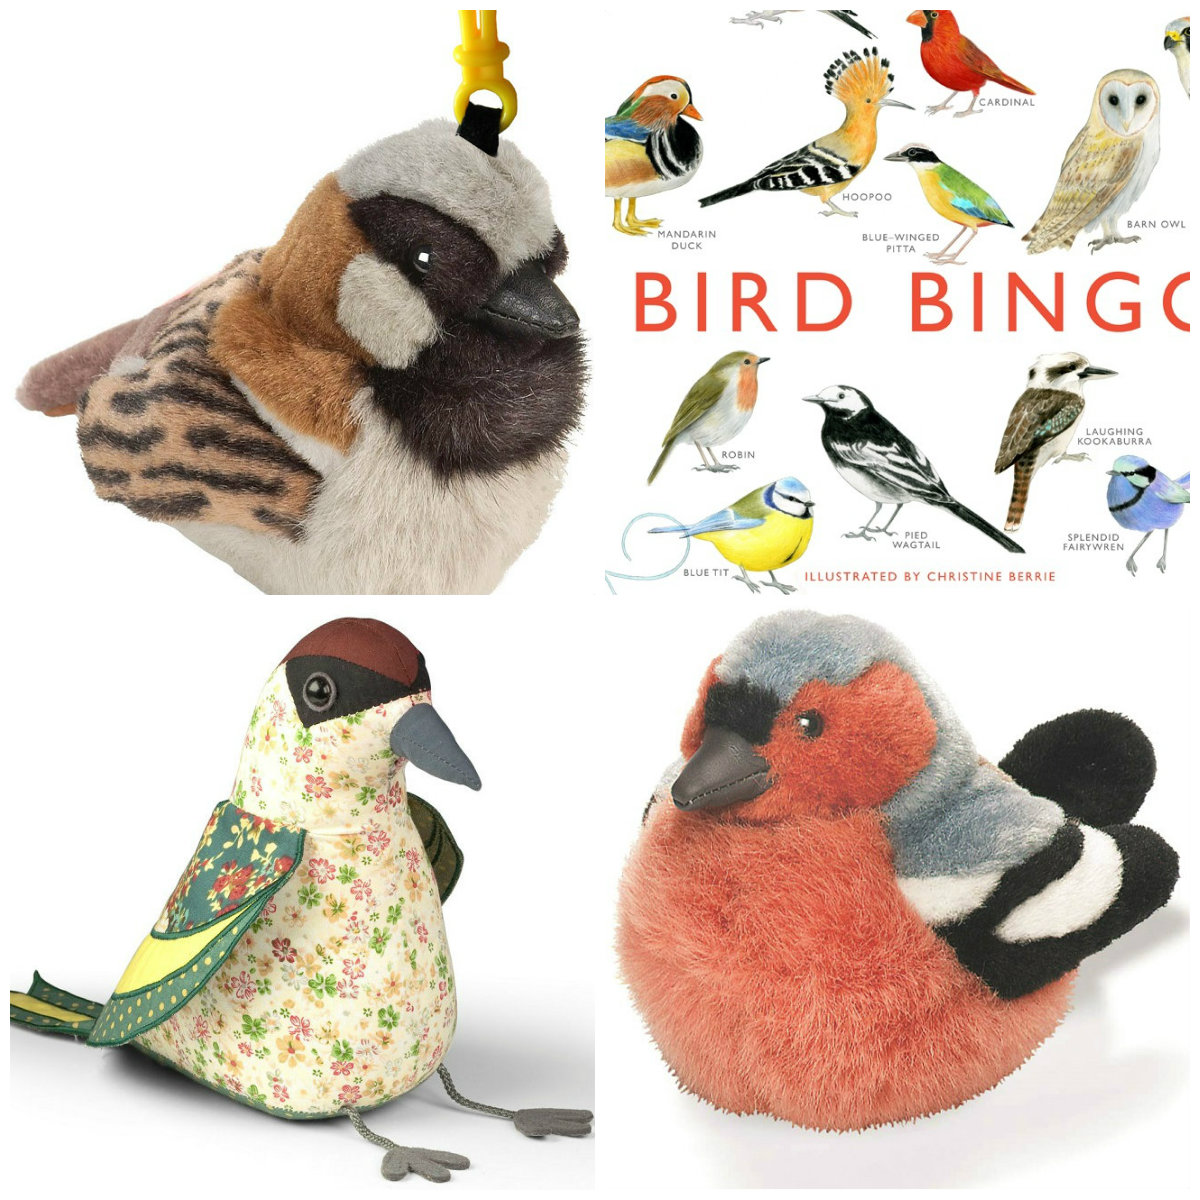 Bugs and Fishes by Lupin: Gift Ideas for Bird Lovers, from